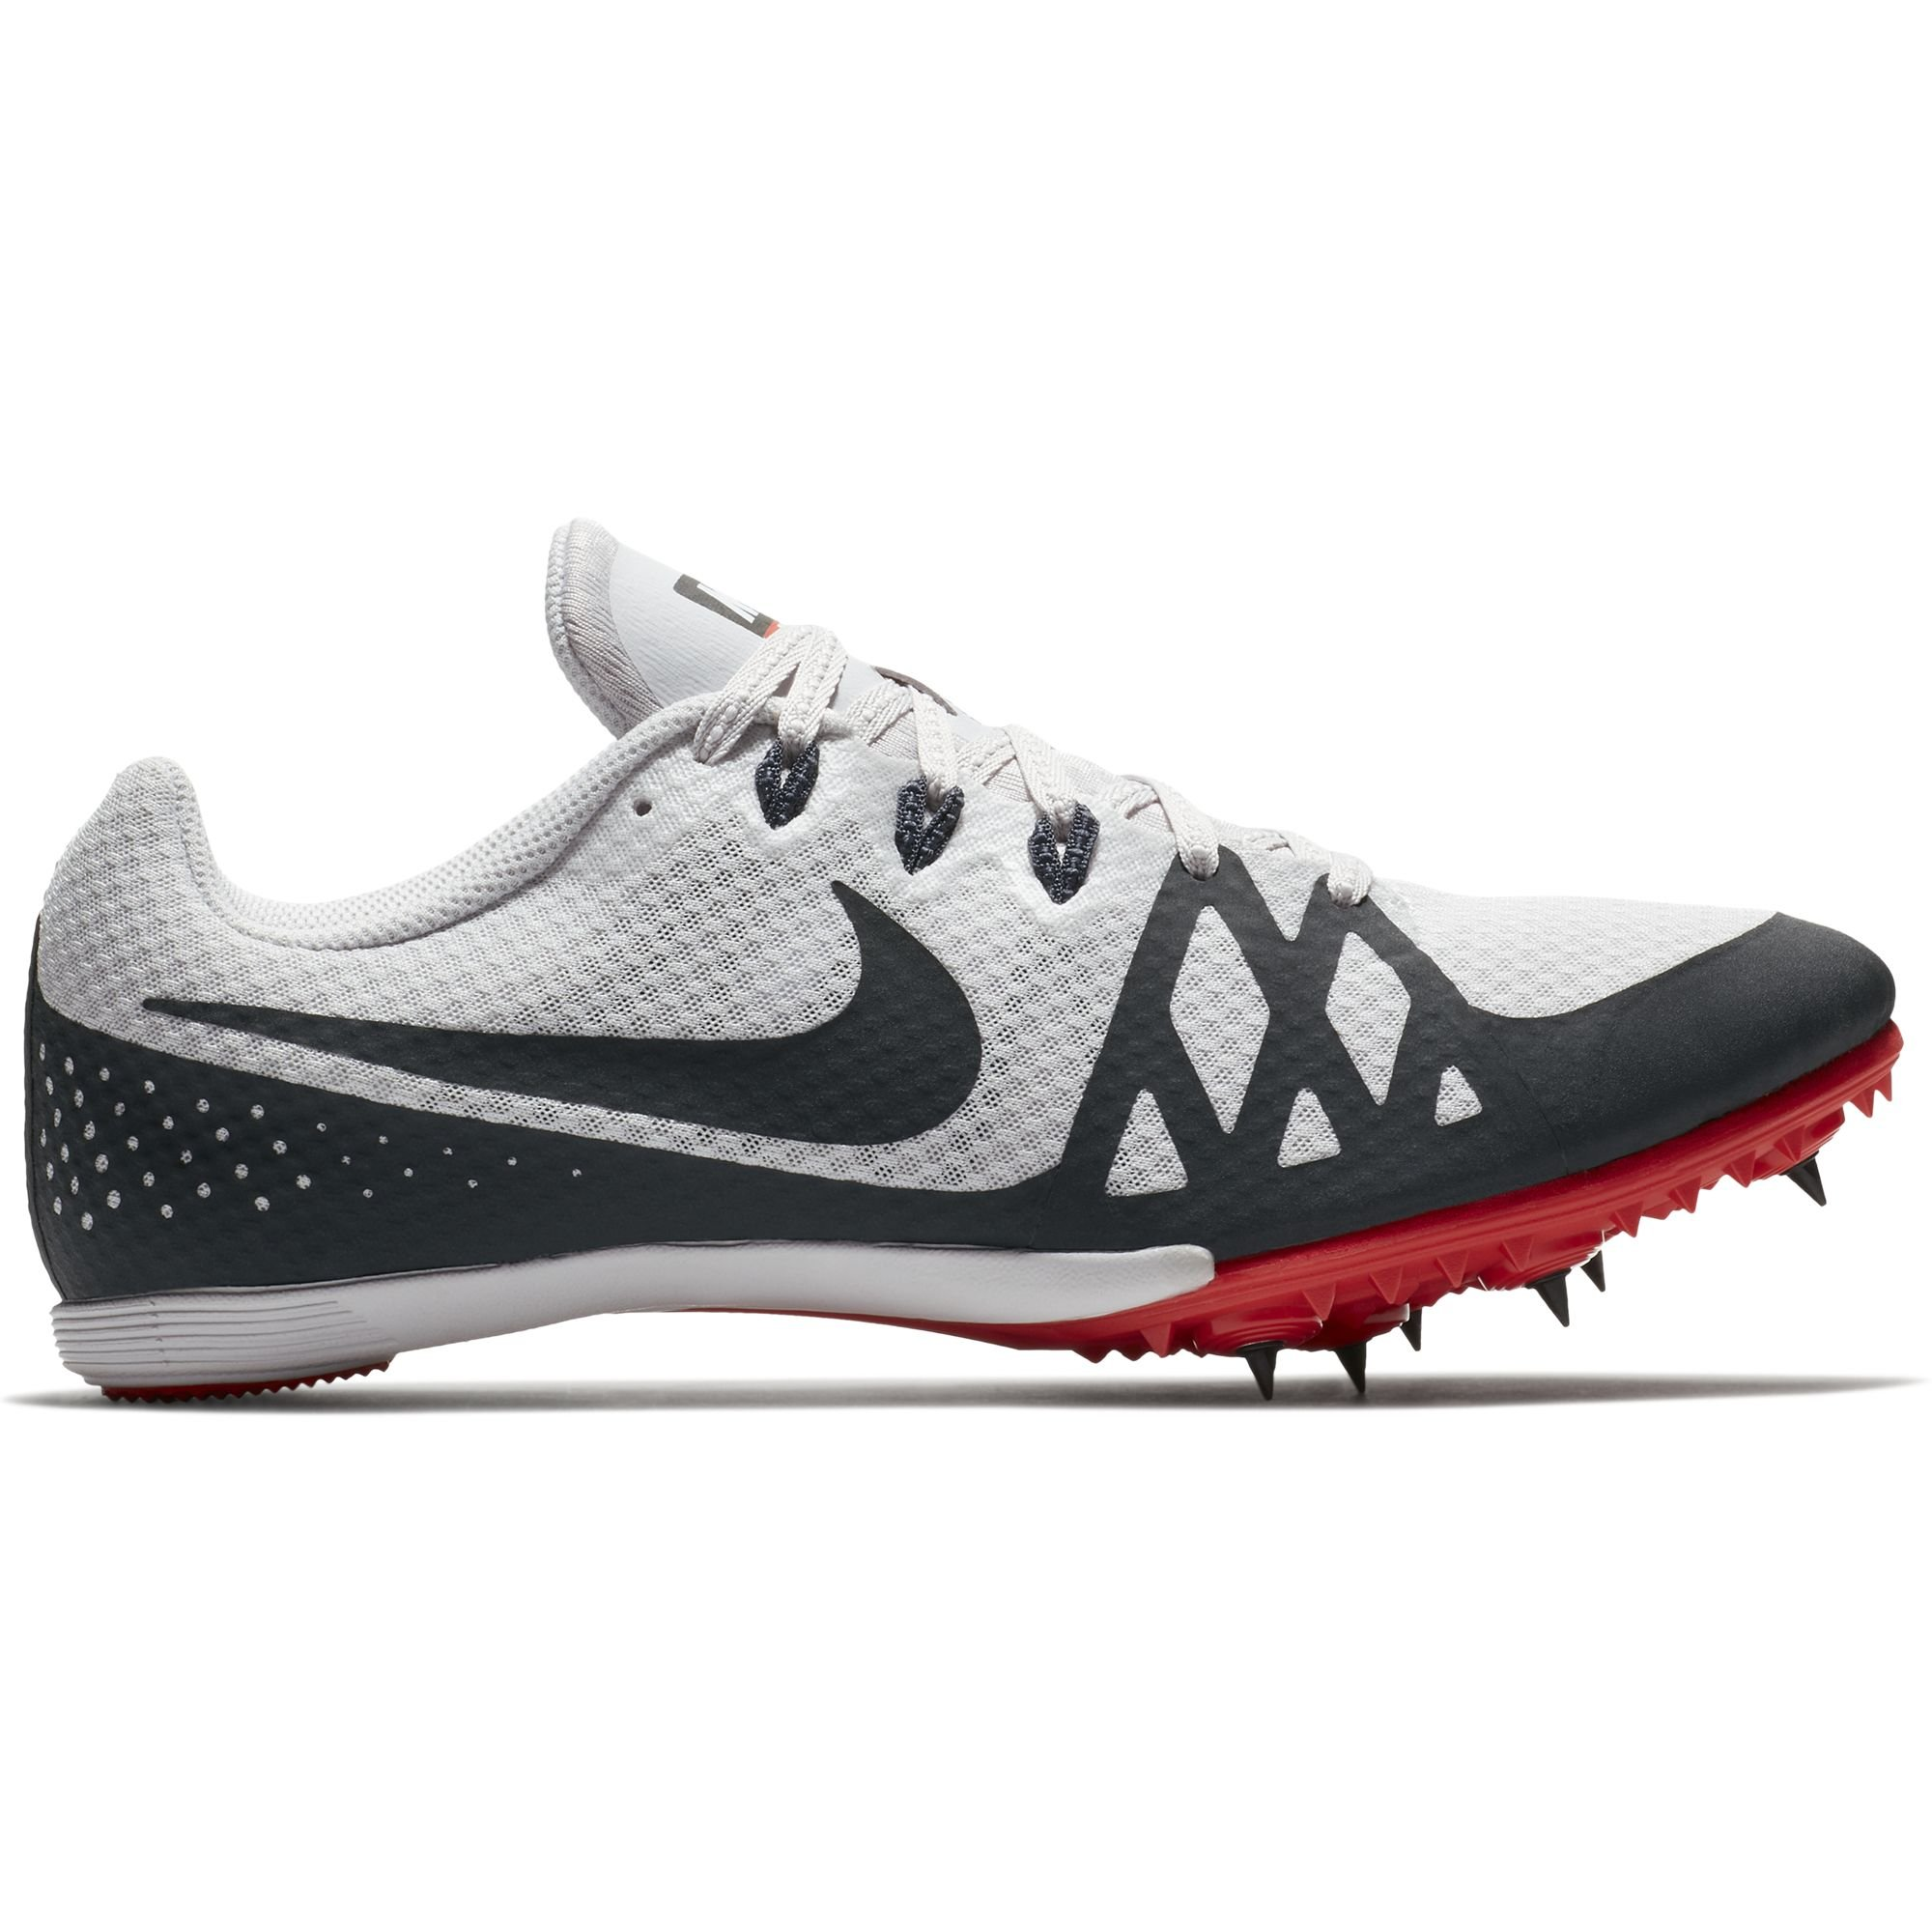 the best attitude 4a089 d4efa Nike Men s Zoom Rival MD 8 Track Spike Vast Grey Anthracite Habanero Red